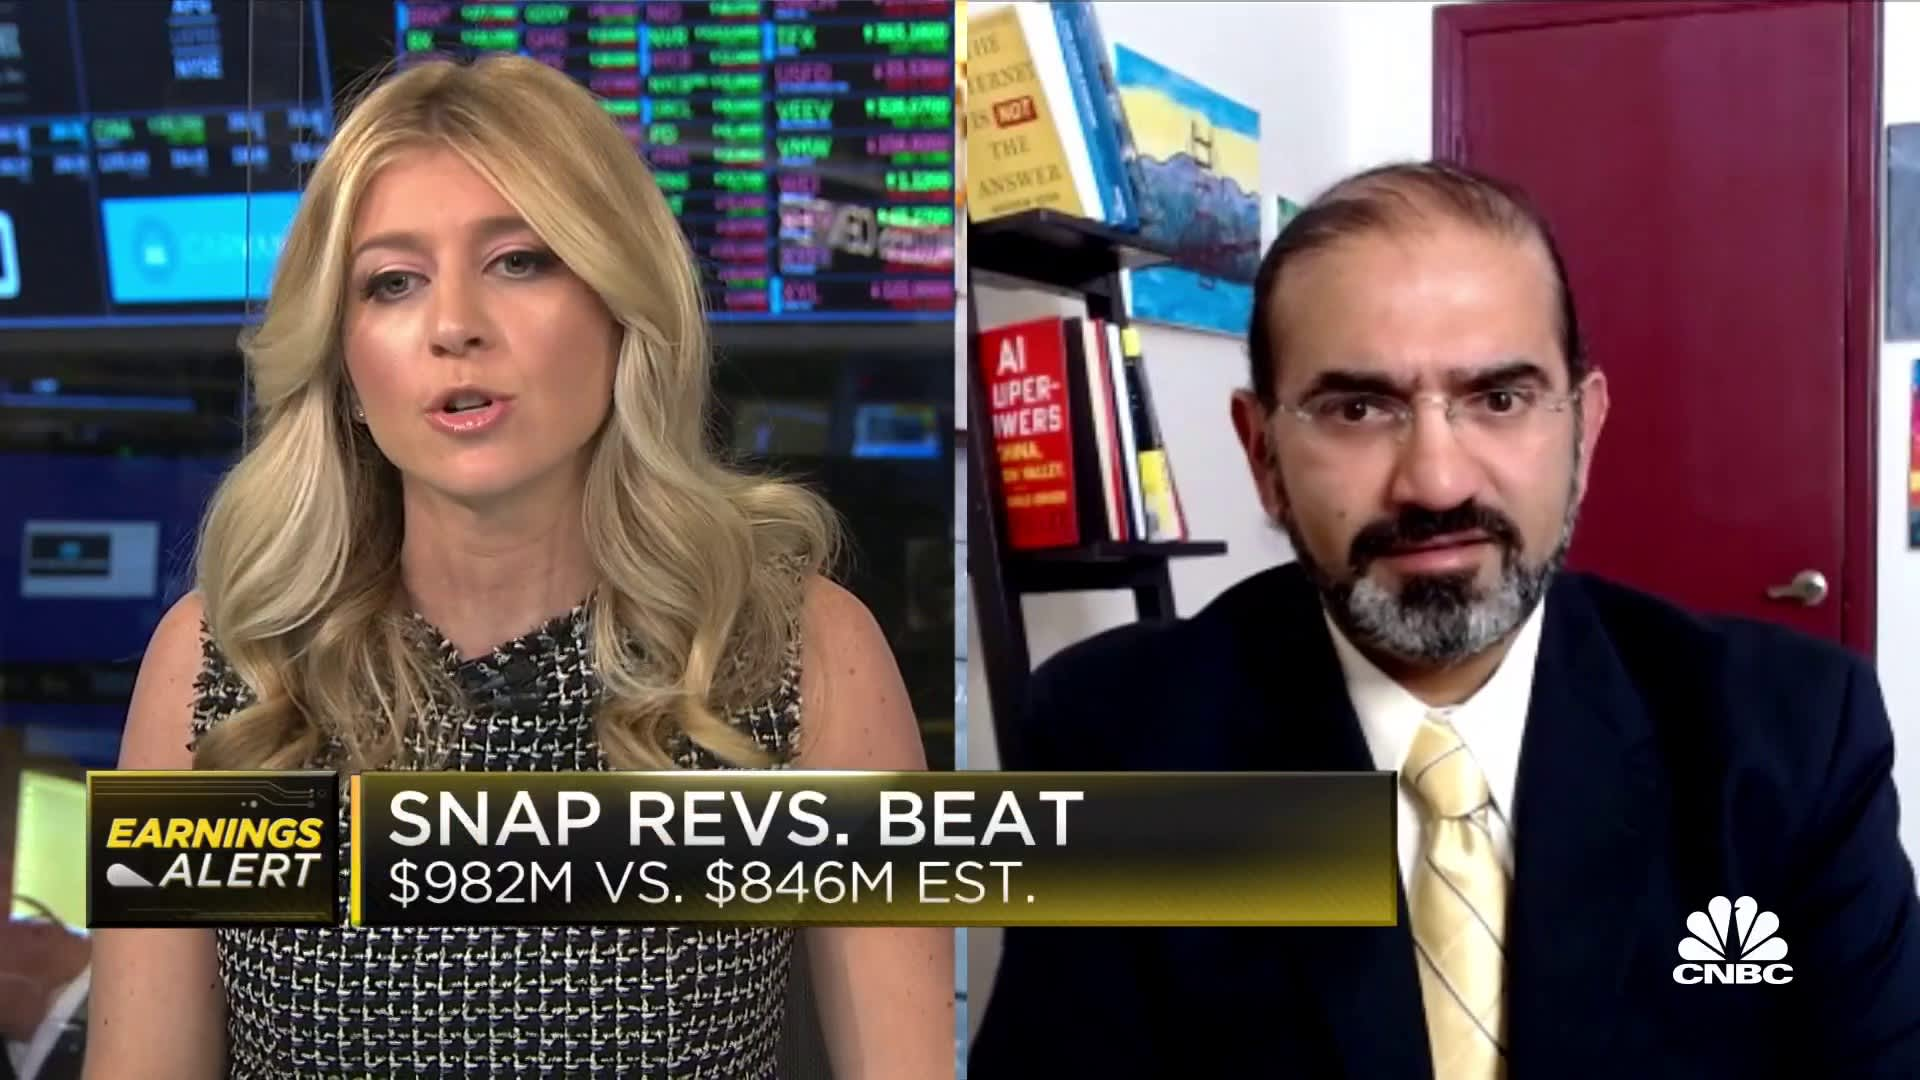 Snap grows users faster than expected in Q2